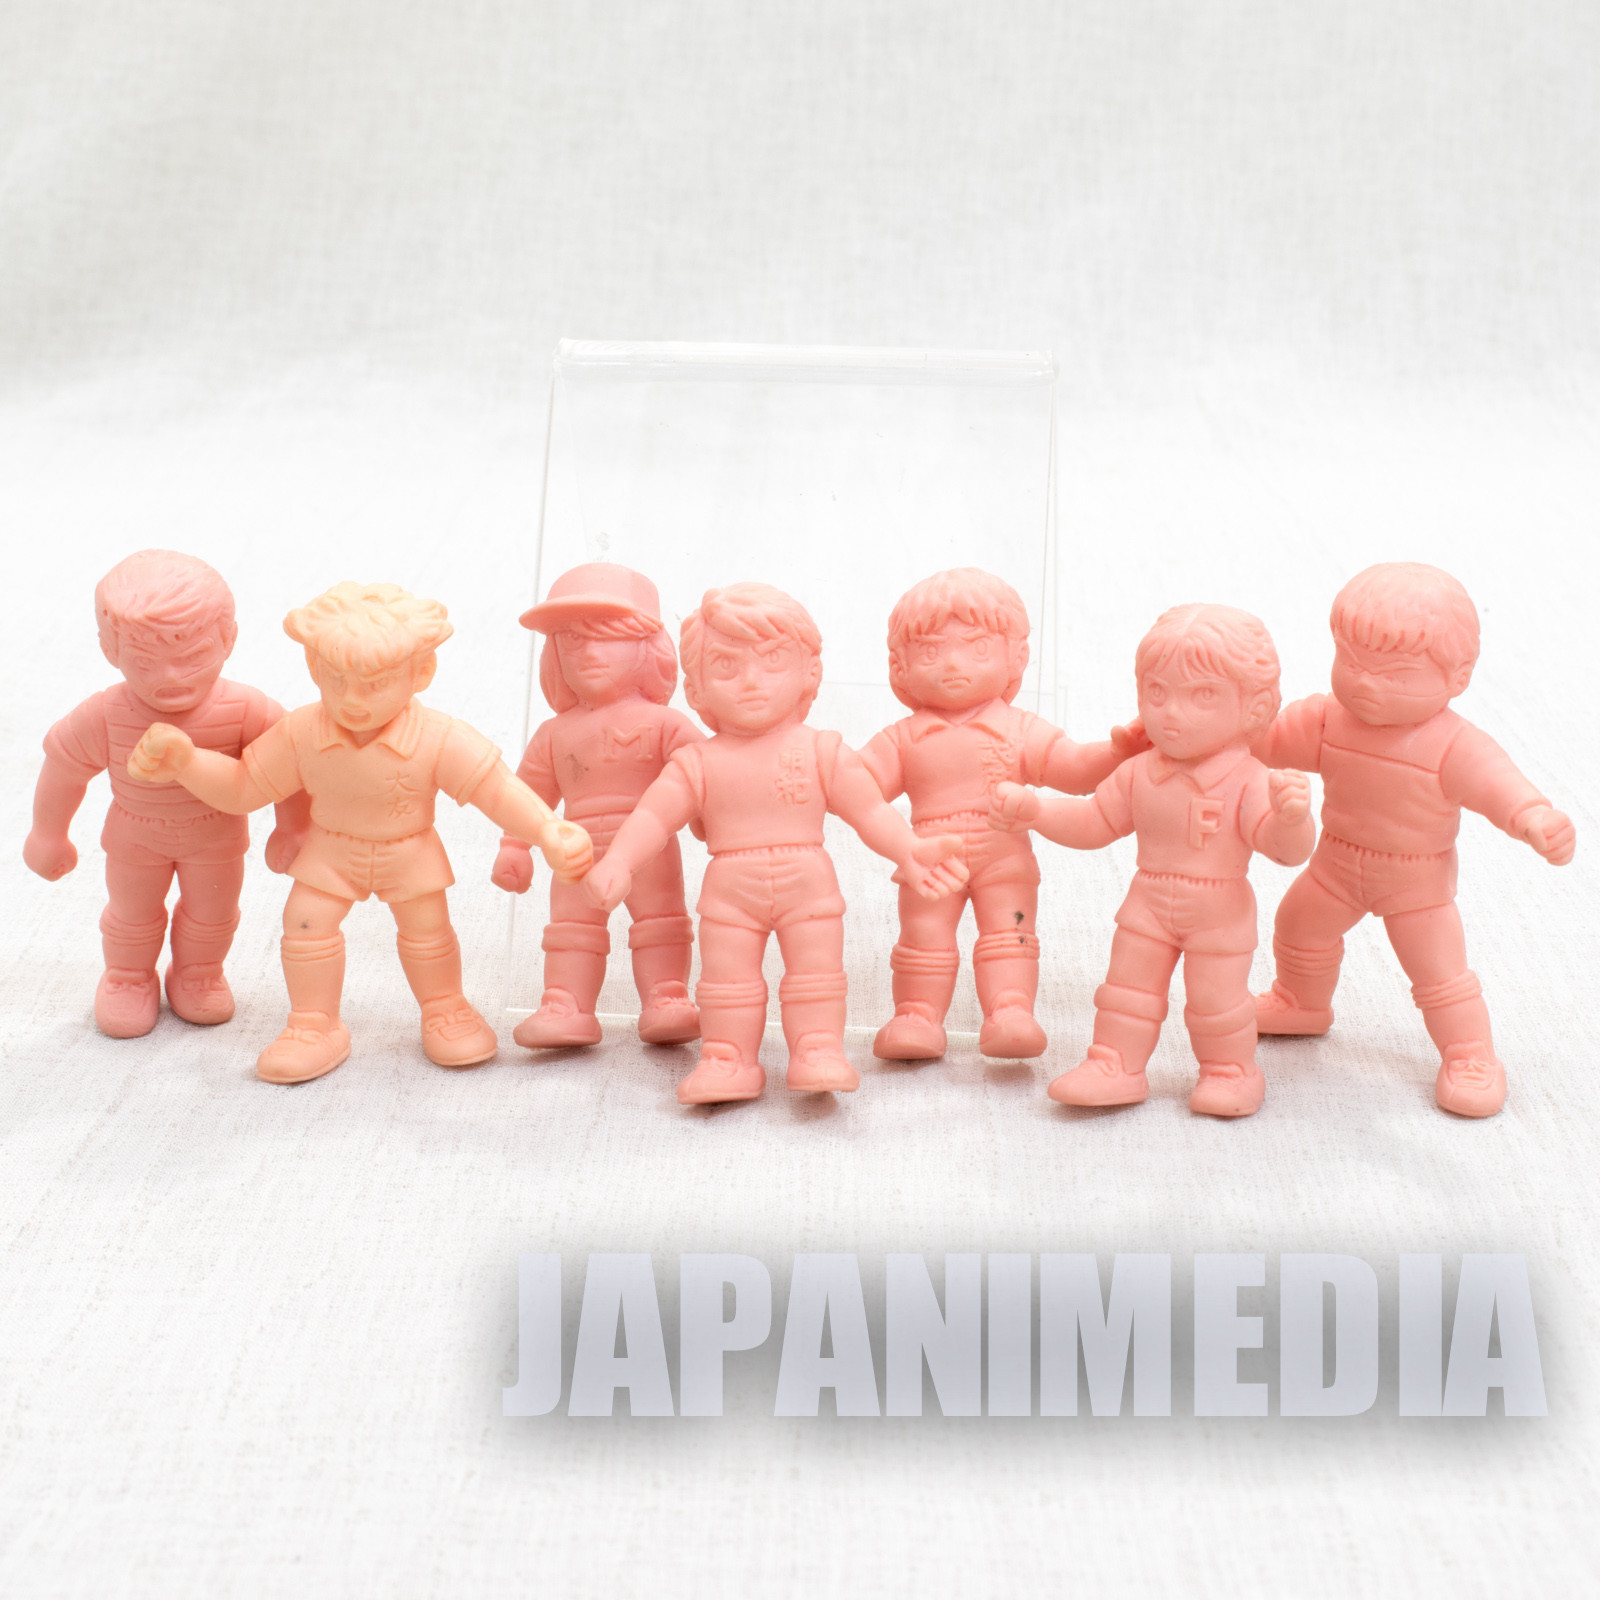 Retro Captain Tsubasa Mini Rubber Figure 7pc Set Toho Team etc JAPAN